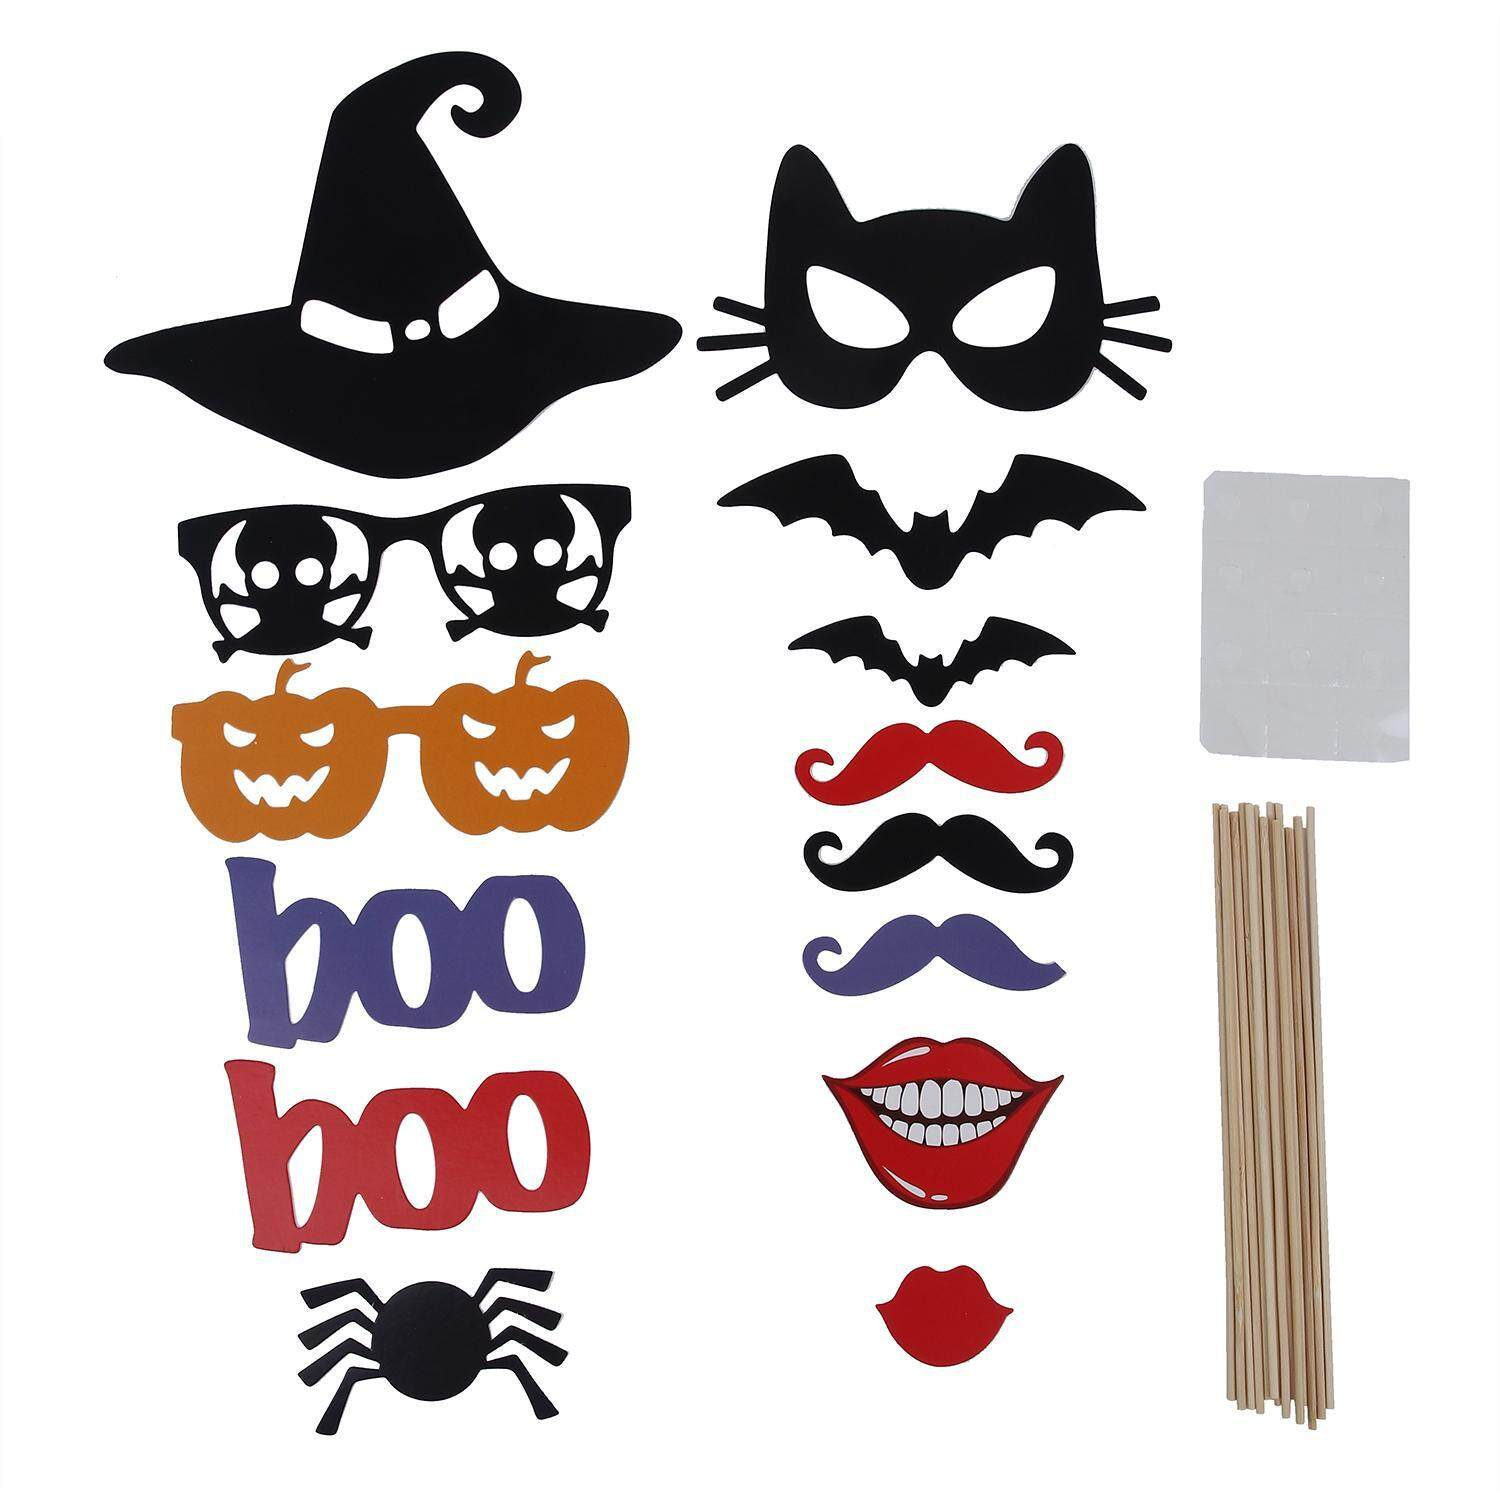 svoovs Photo Booth Props DIY Kit For Halloween Christmas Wedding Birthday Graduation Party,Photobooth Dress-up Accessories Party Favors,58 Set - intl